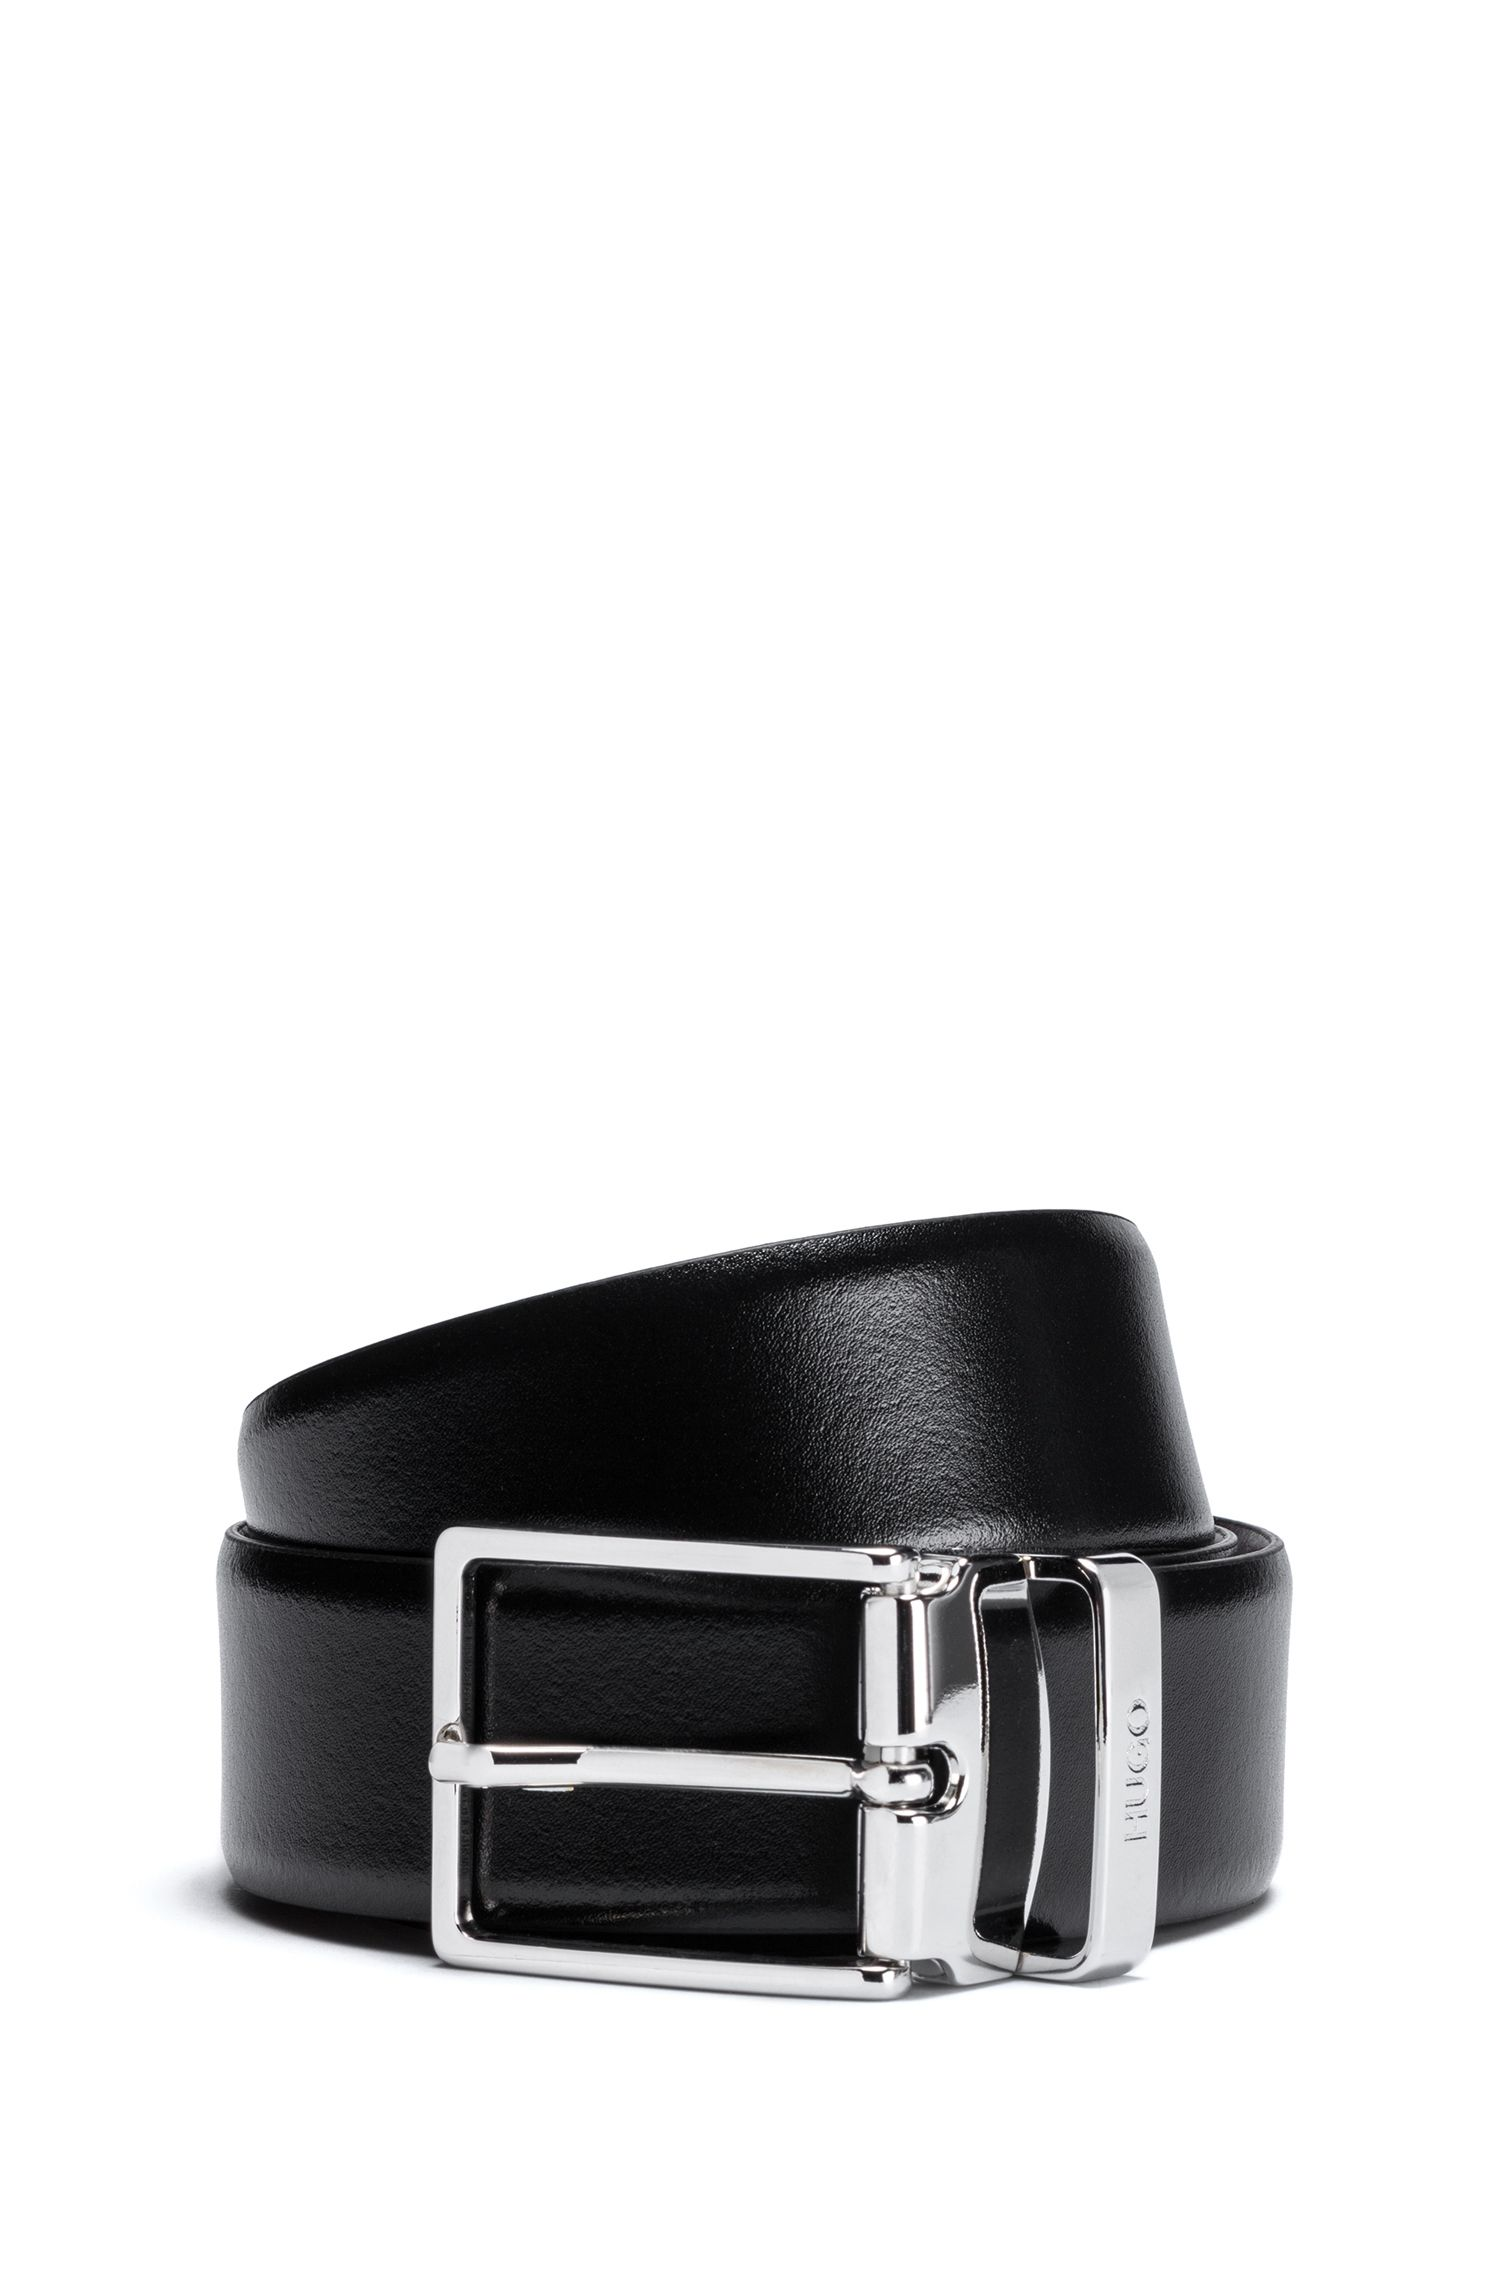 Reversible Leather Belt | Galvo Or35 pp